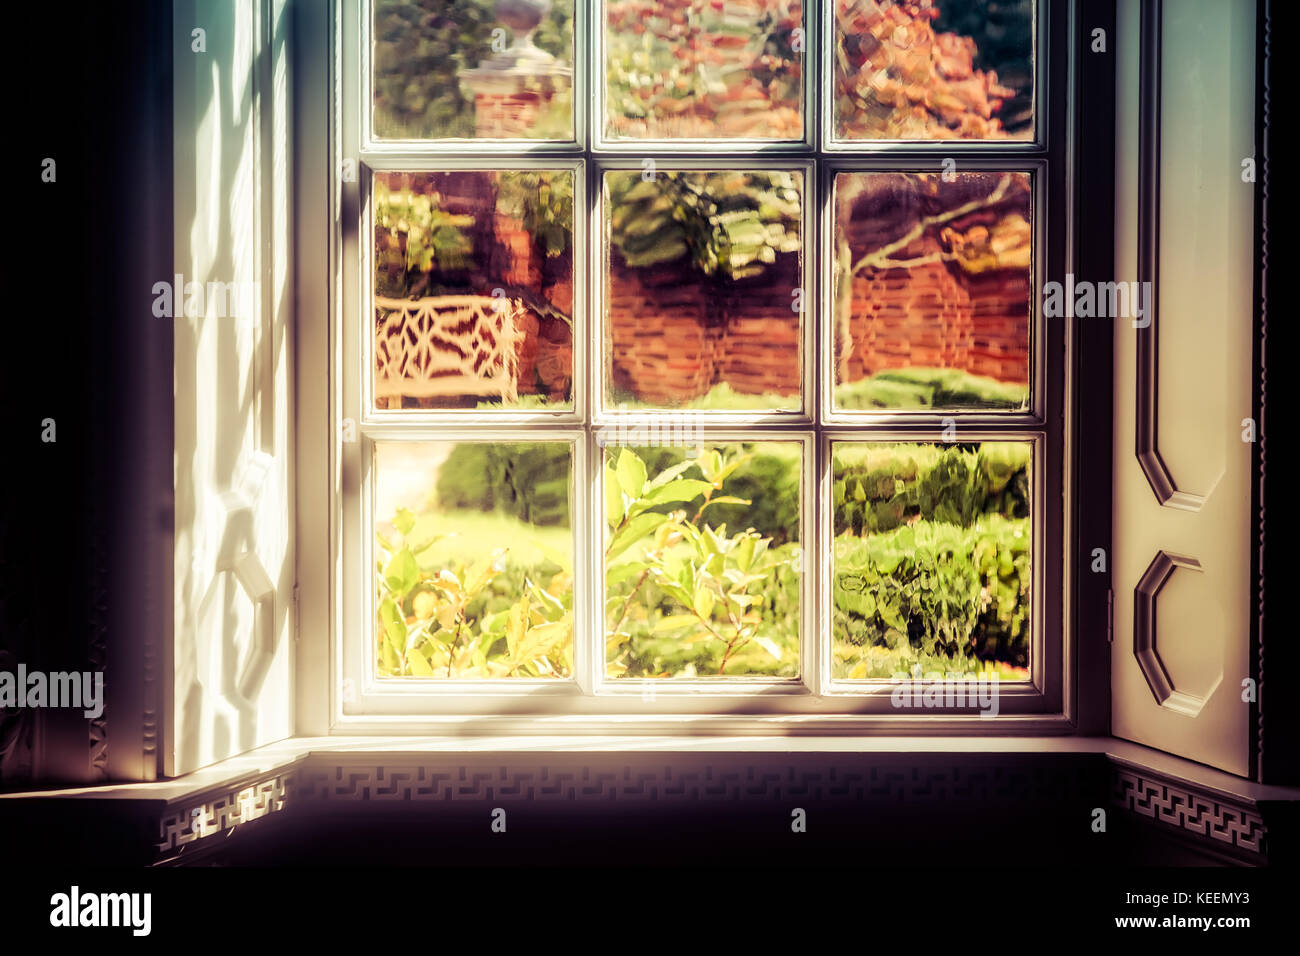 The shadows and light hitting a window that looks in to a Virginia yard. - Stock Image